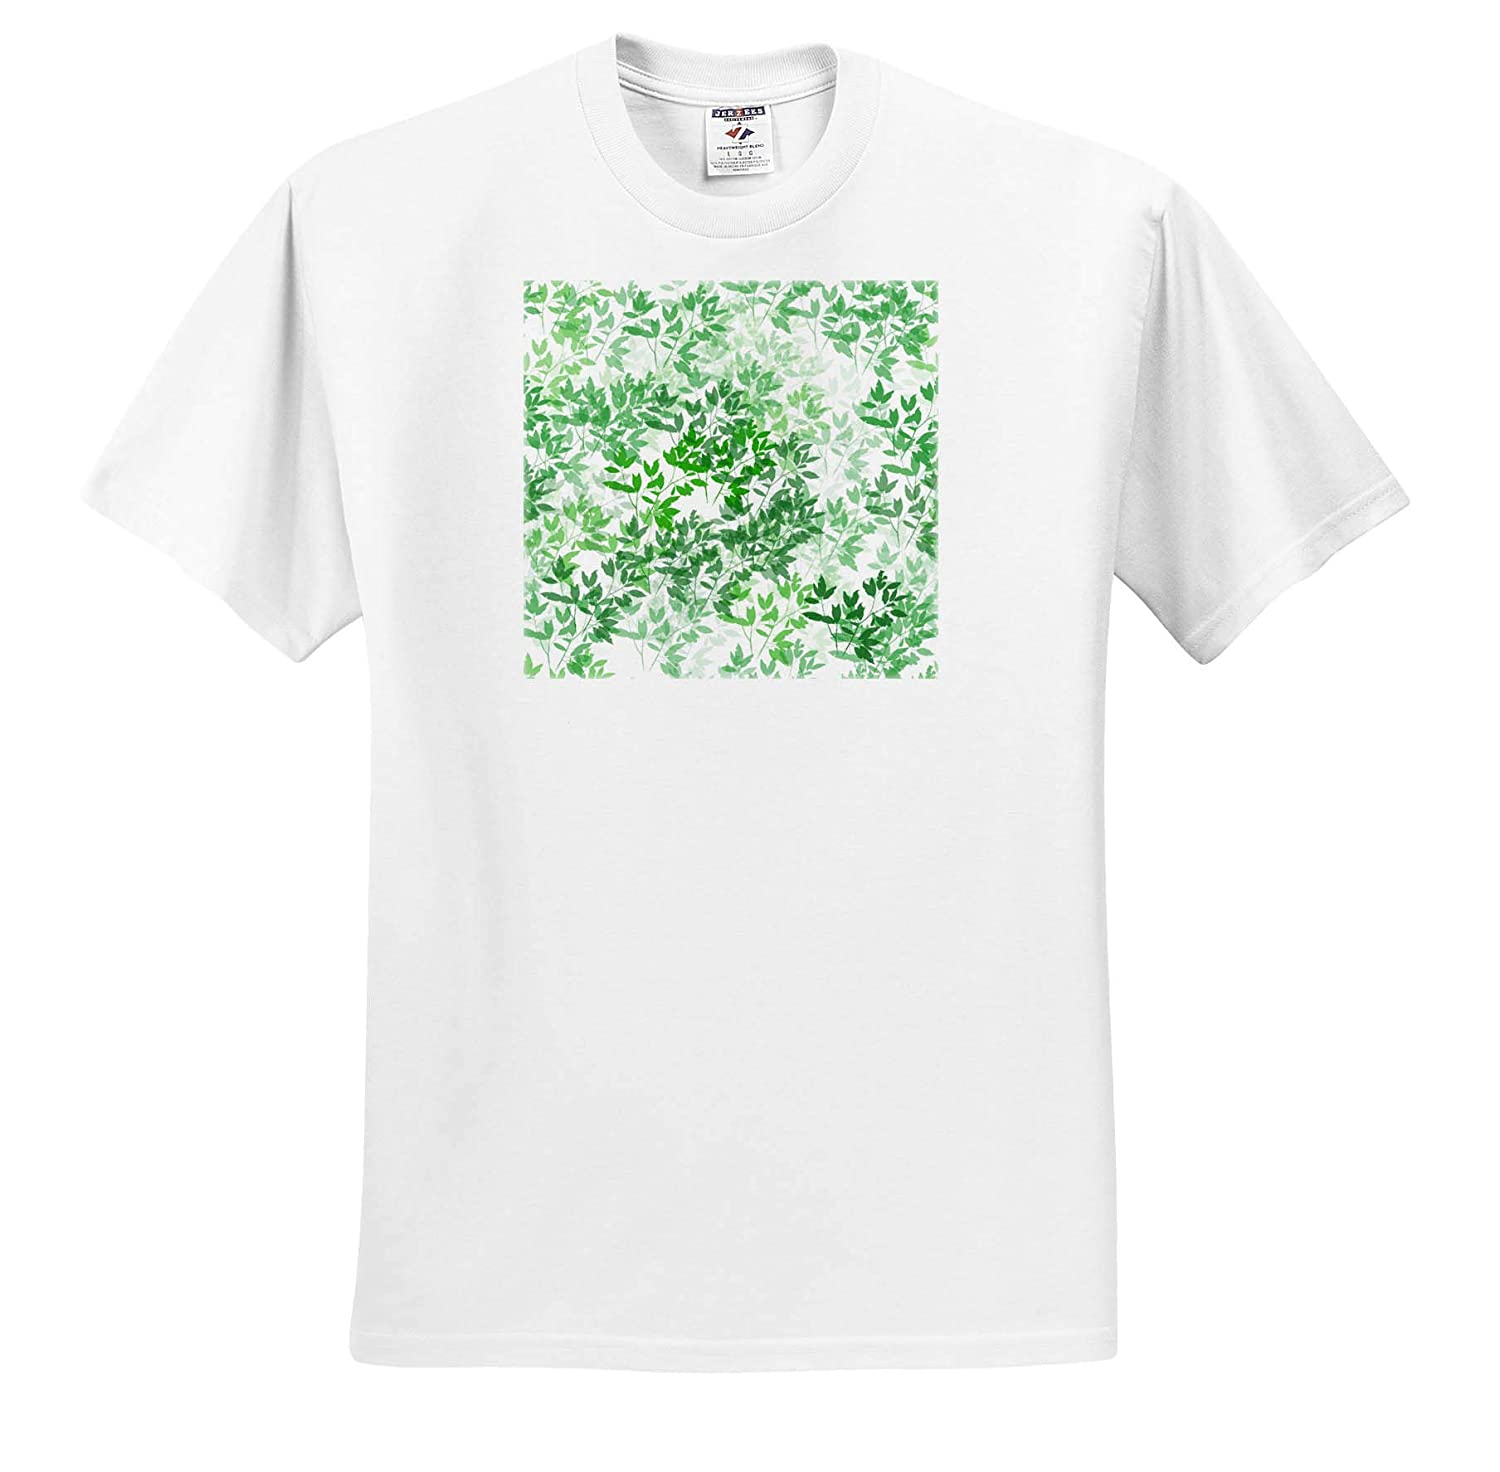 Image of Small Pattern of Intertwined Green Leaves T-Shirts 3dRose Lens Art by Florene Floral and Tree Abstracts